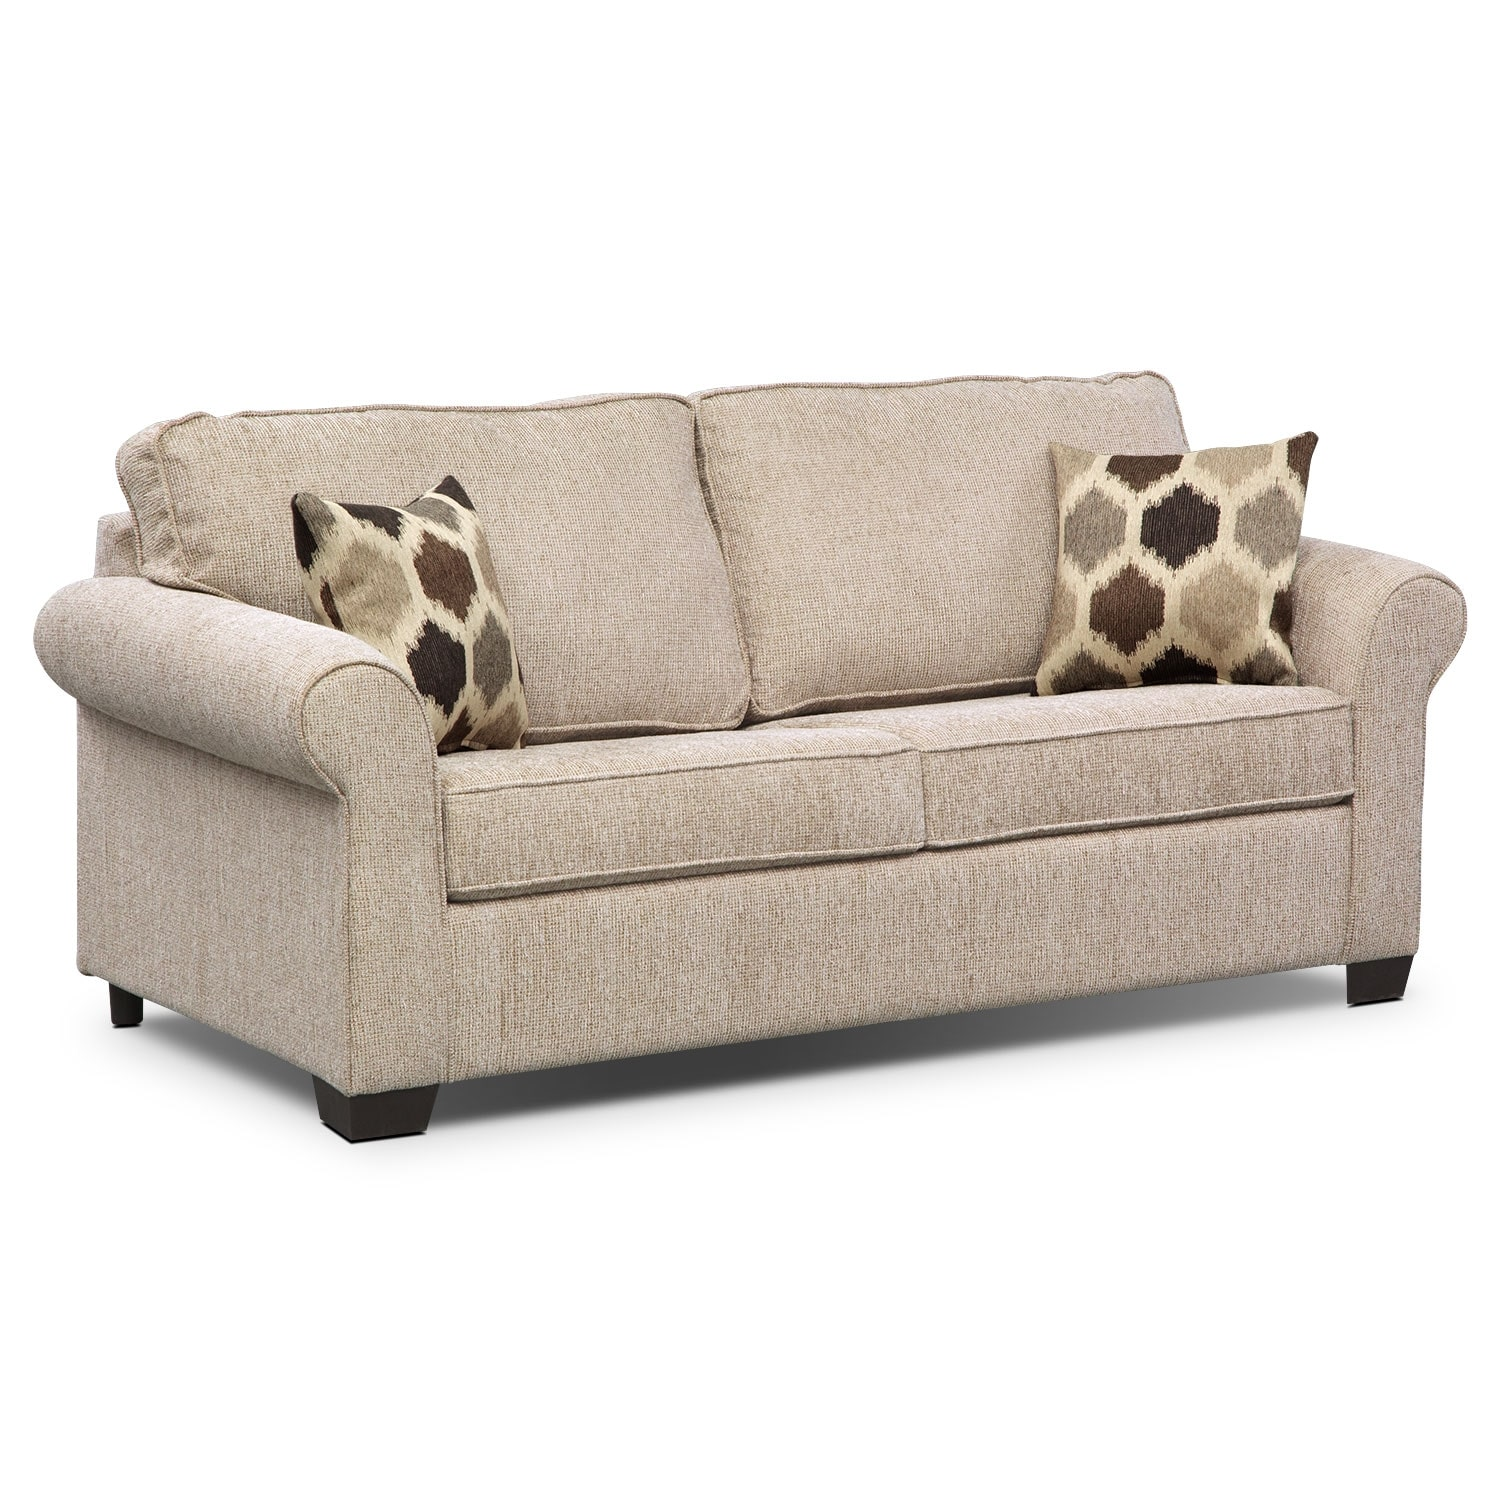 Living Room Furniture - Fletcher Full Innerspring Sleeper Sofa